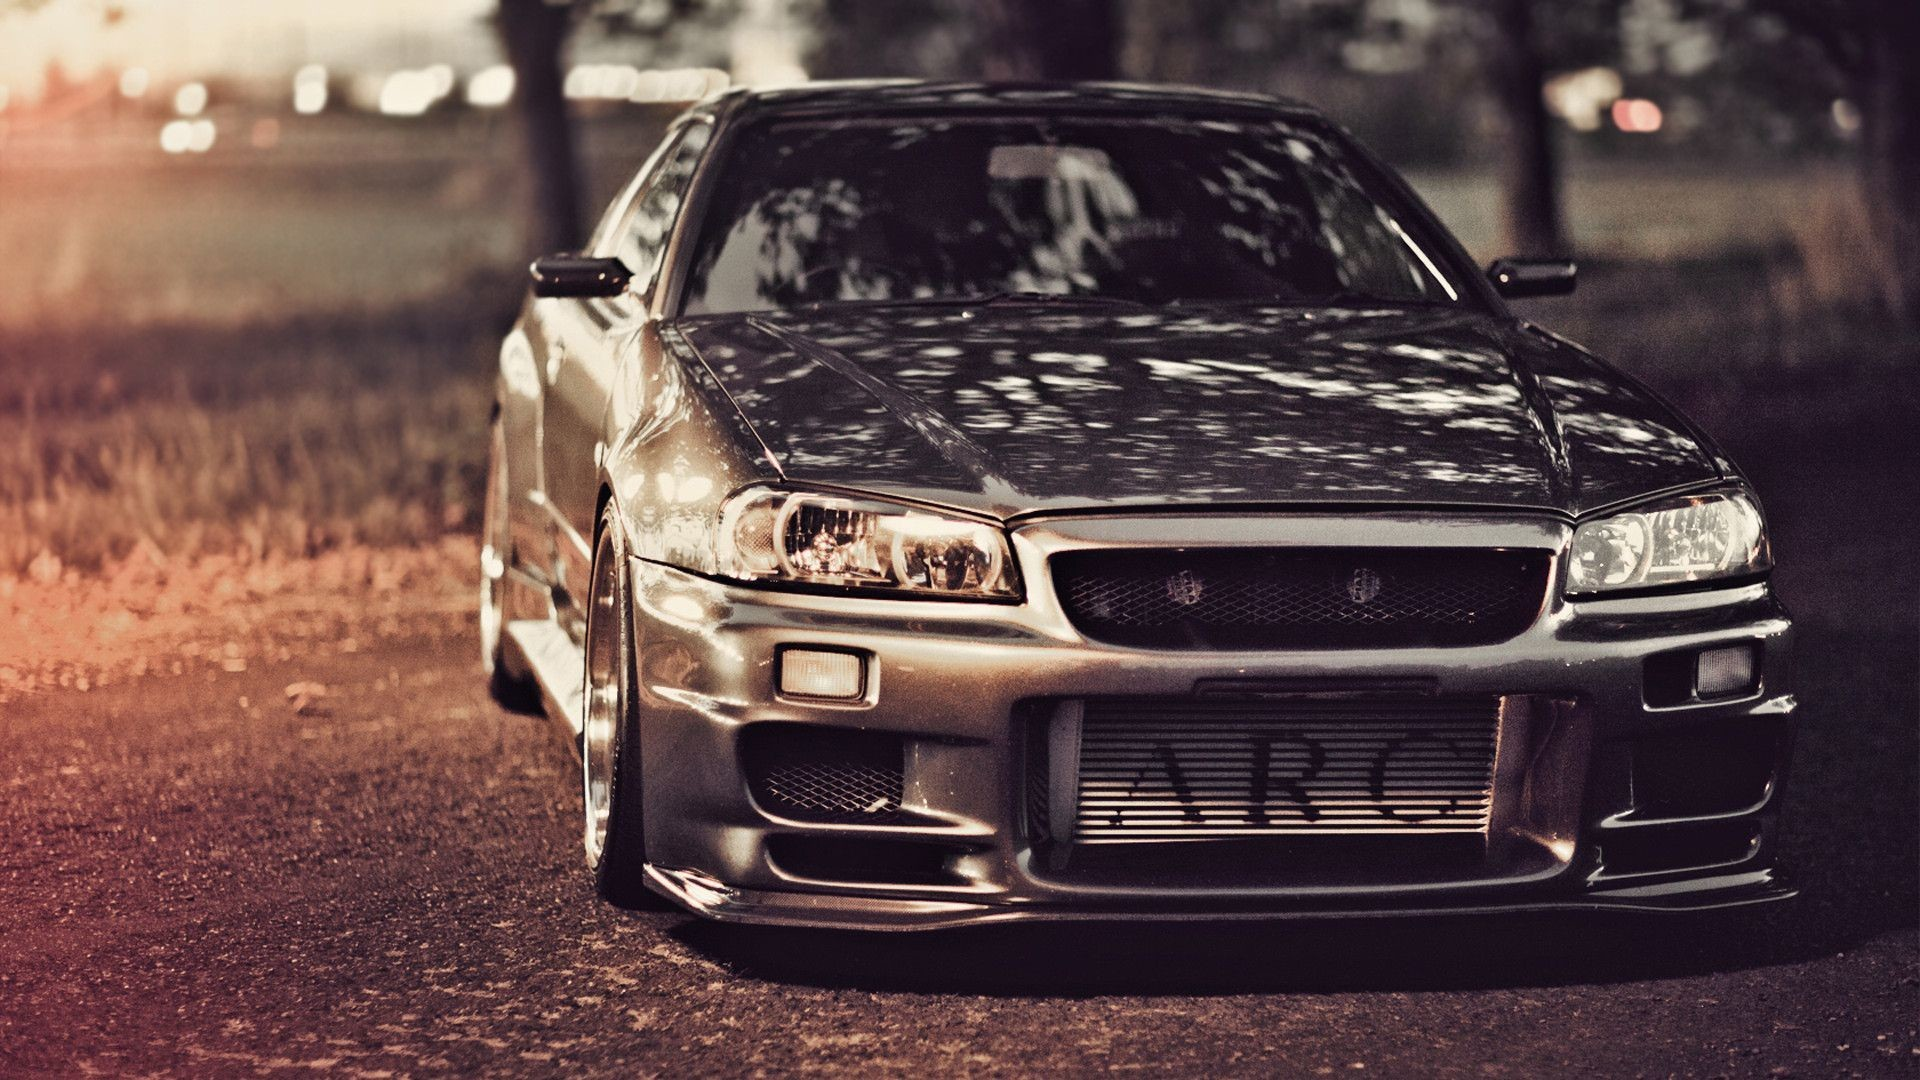 1920x1080 Nissan Skyline GTR R34 Wallpapers - Wallpaper Cave